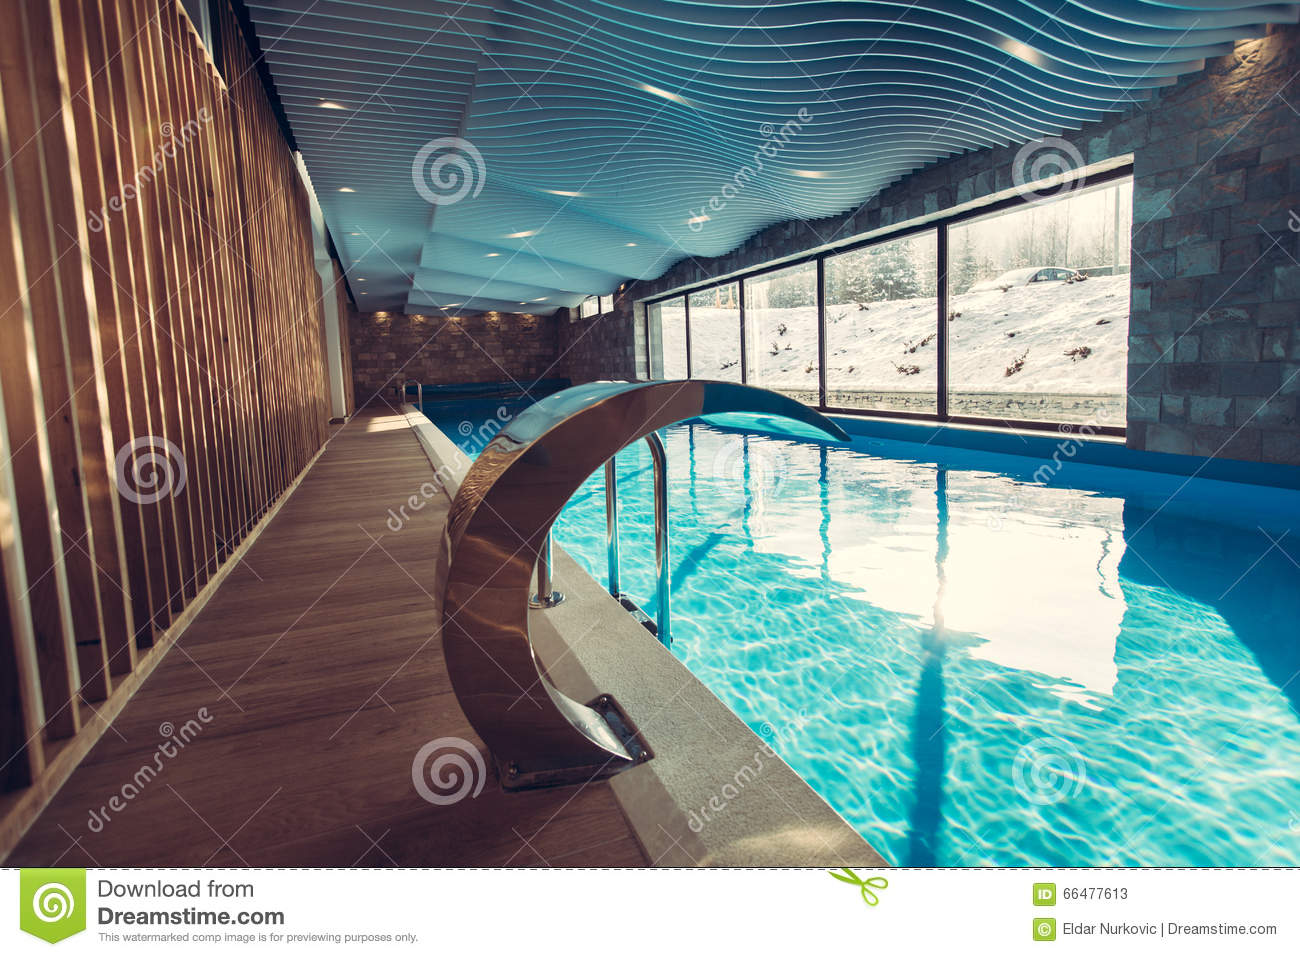 Indoor swimming pool luxus  Exklusiver Swimmingpool In Einem Wellnesshotel Luxus-Resort ...